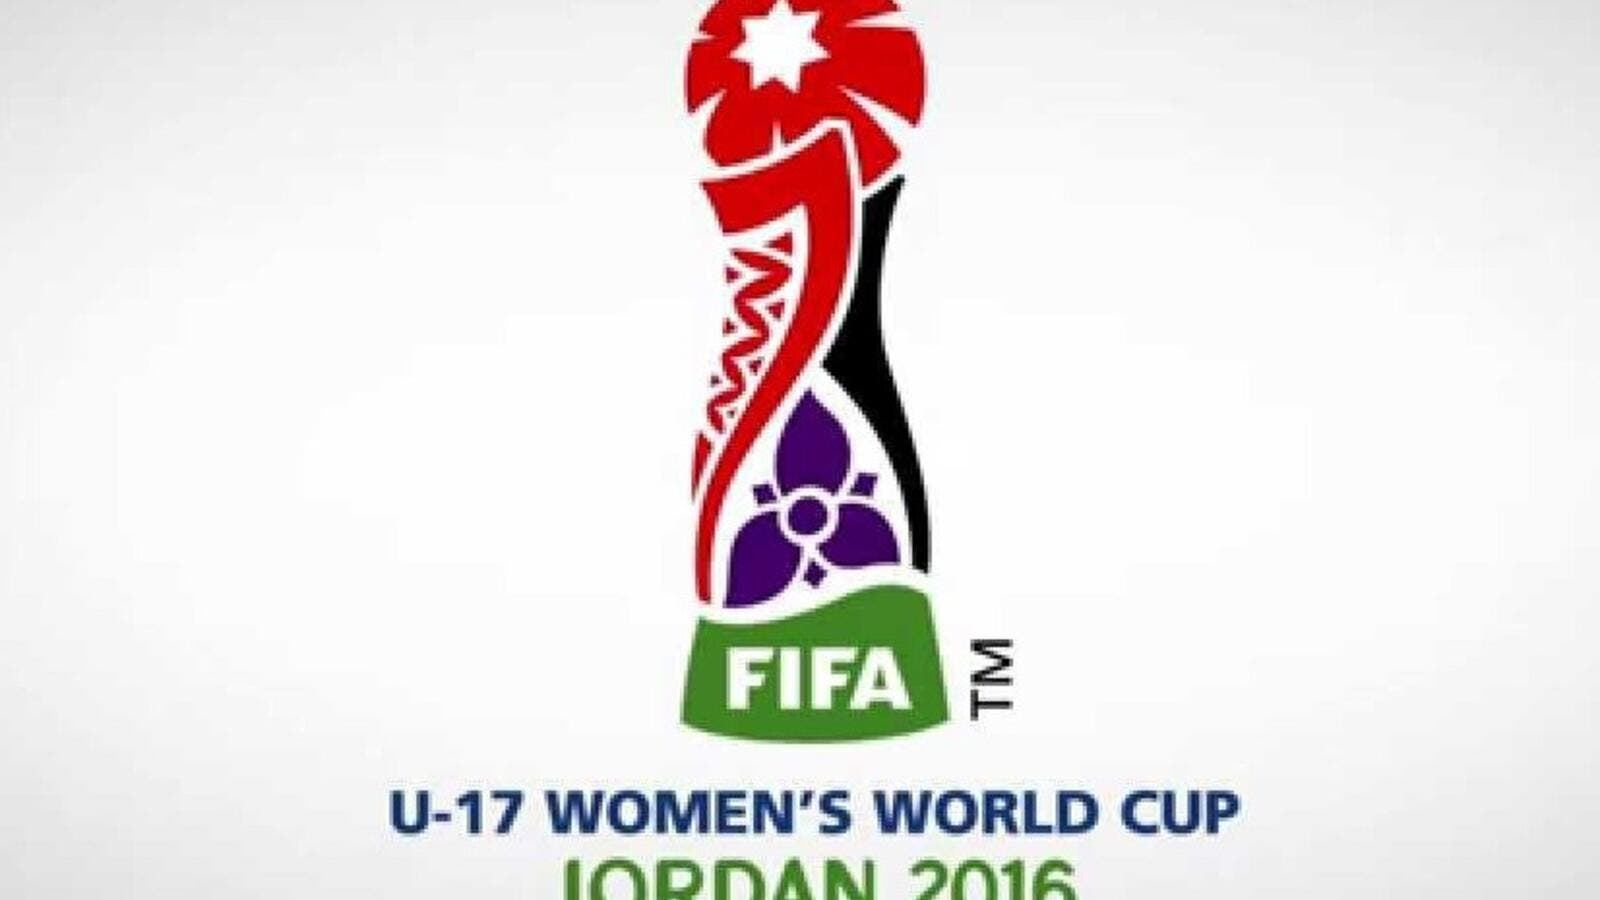 The FIFA U-17 Women's World Cup logo